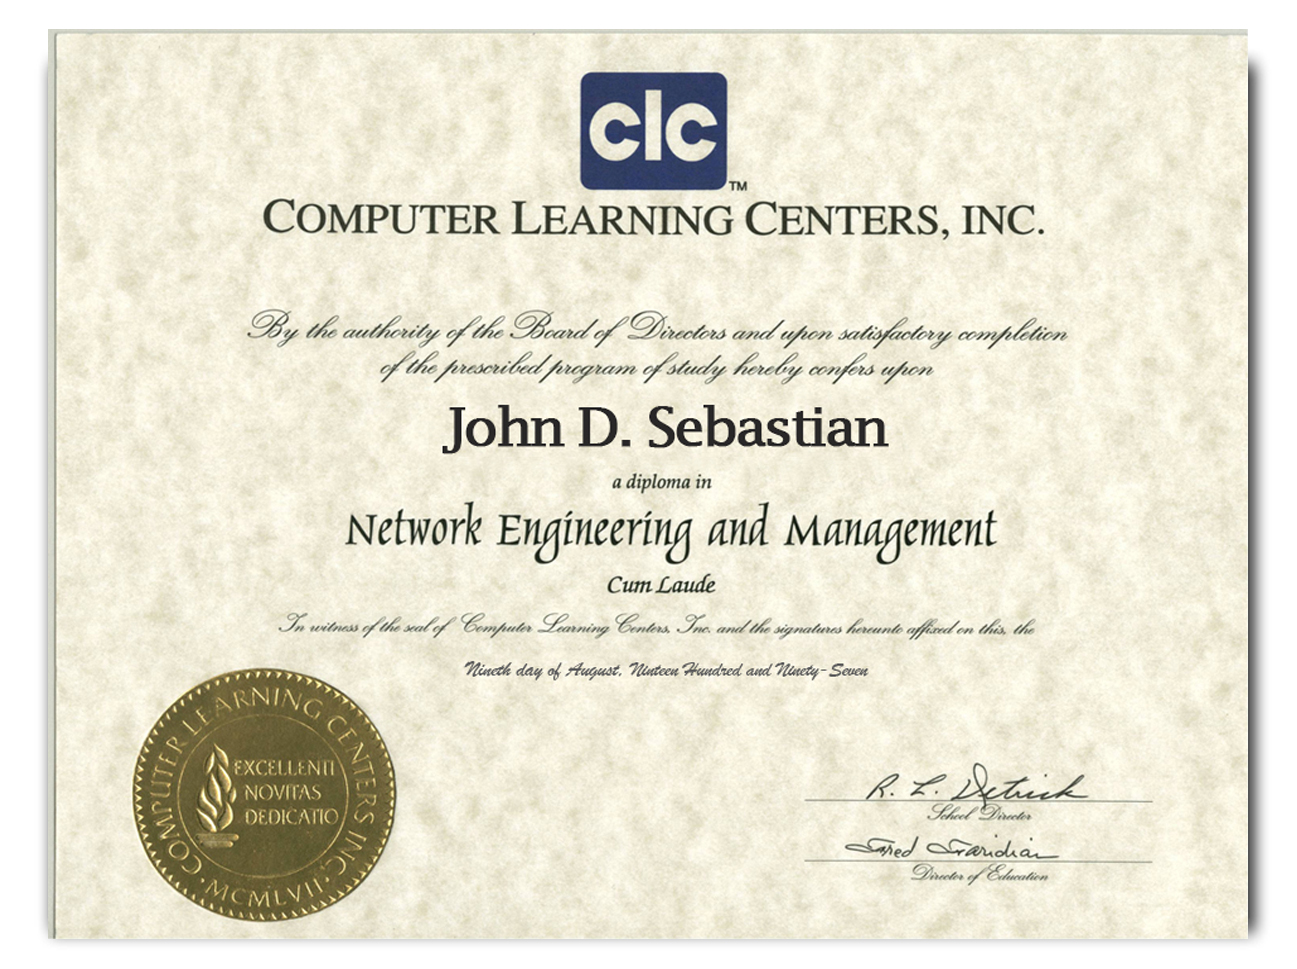 JDS Network Engineering Graduate of Los Angeles Computer Learning Center